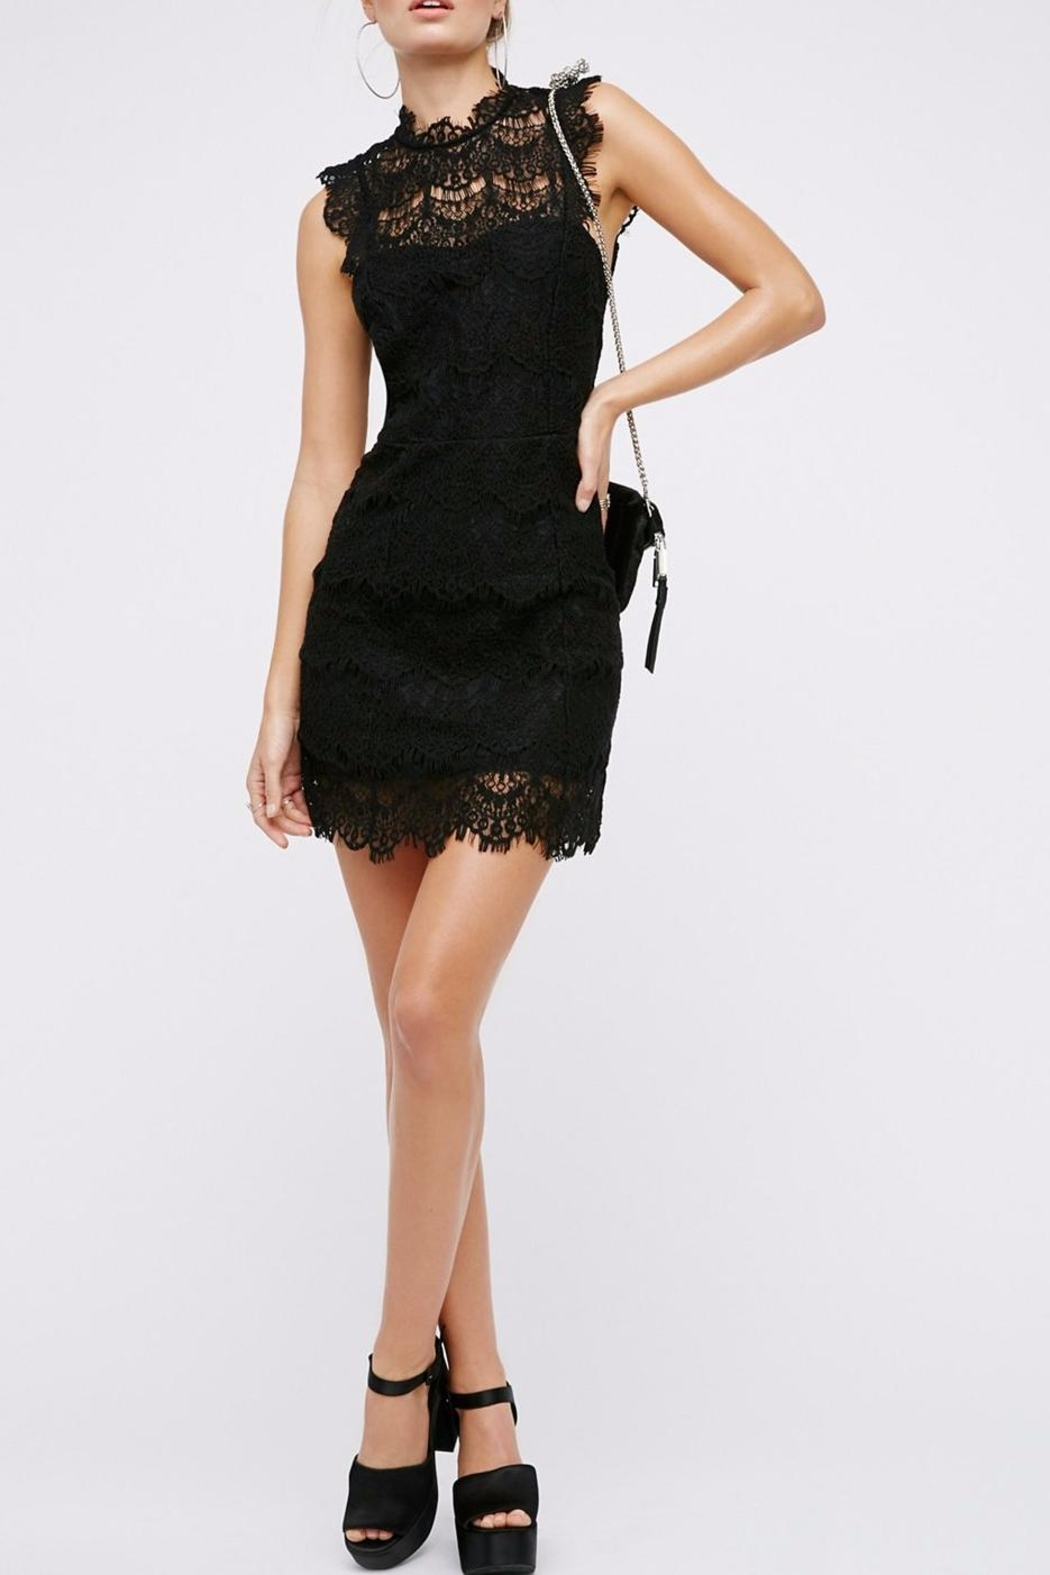 936a65f78af Intimately Free People Daydream Bodycon Dress from Canada by Esprit ...